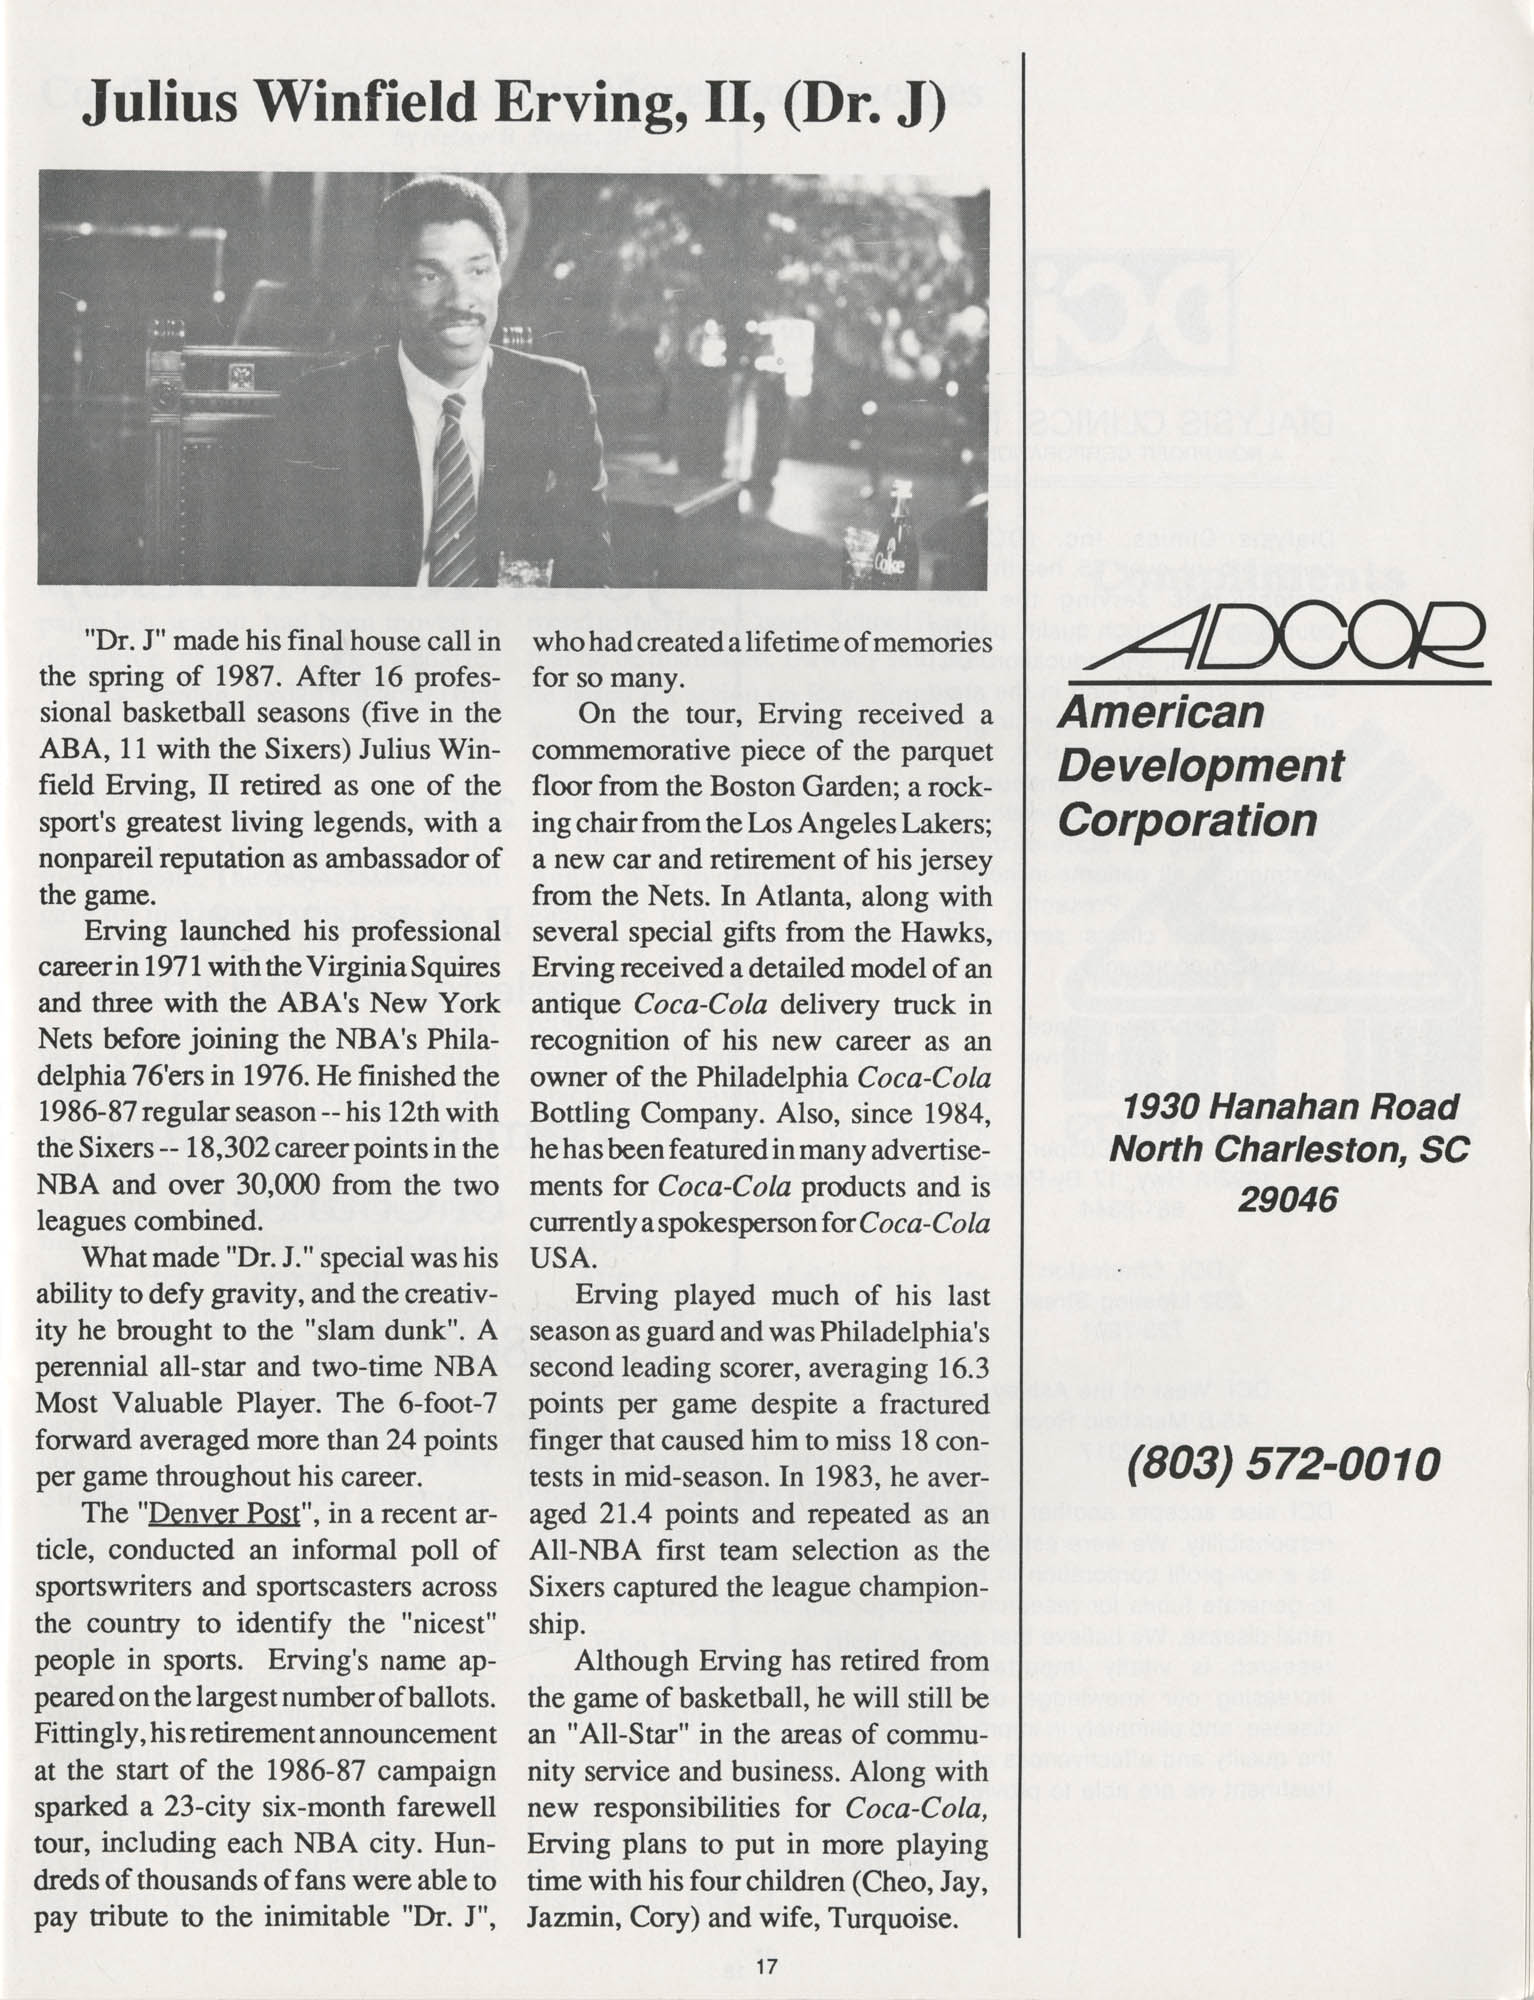 1990 NAACP Freedom Fund Magazine, Charleston Branch of the NAACP, 74th Anniversary, Page 17